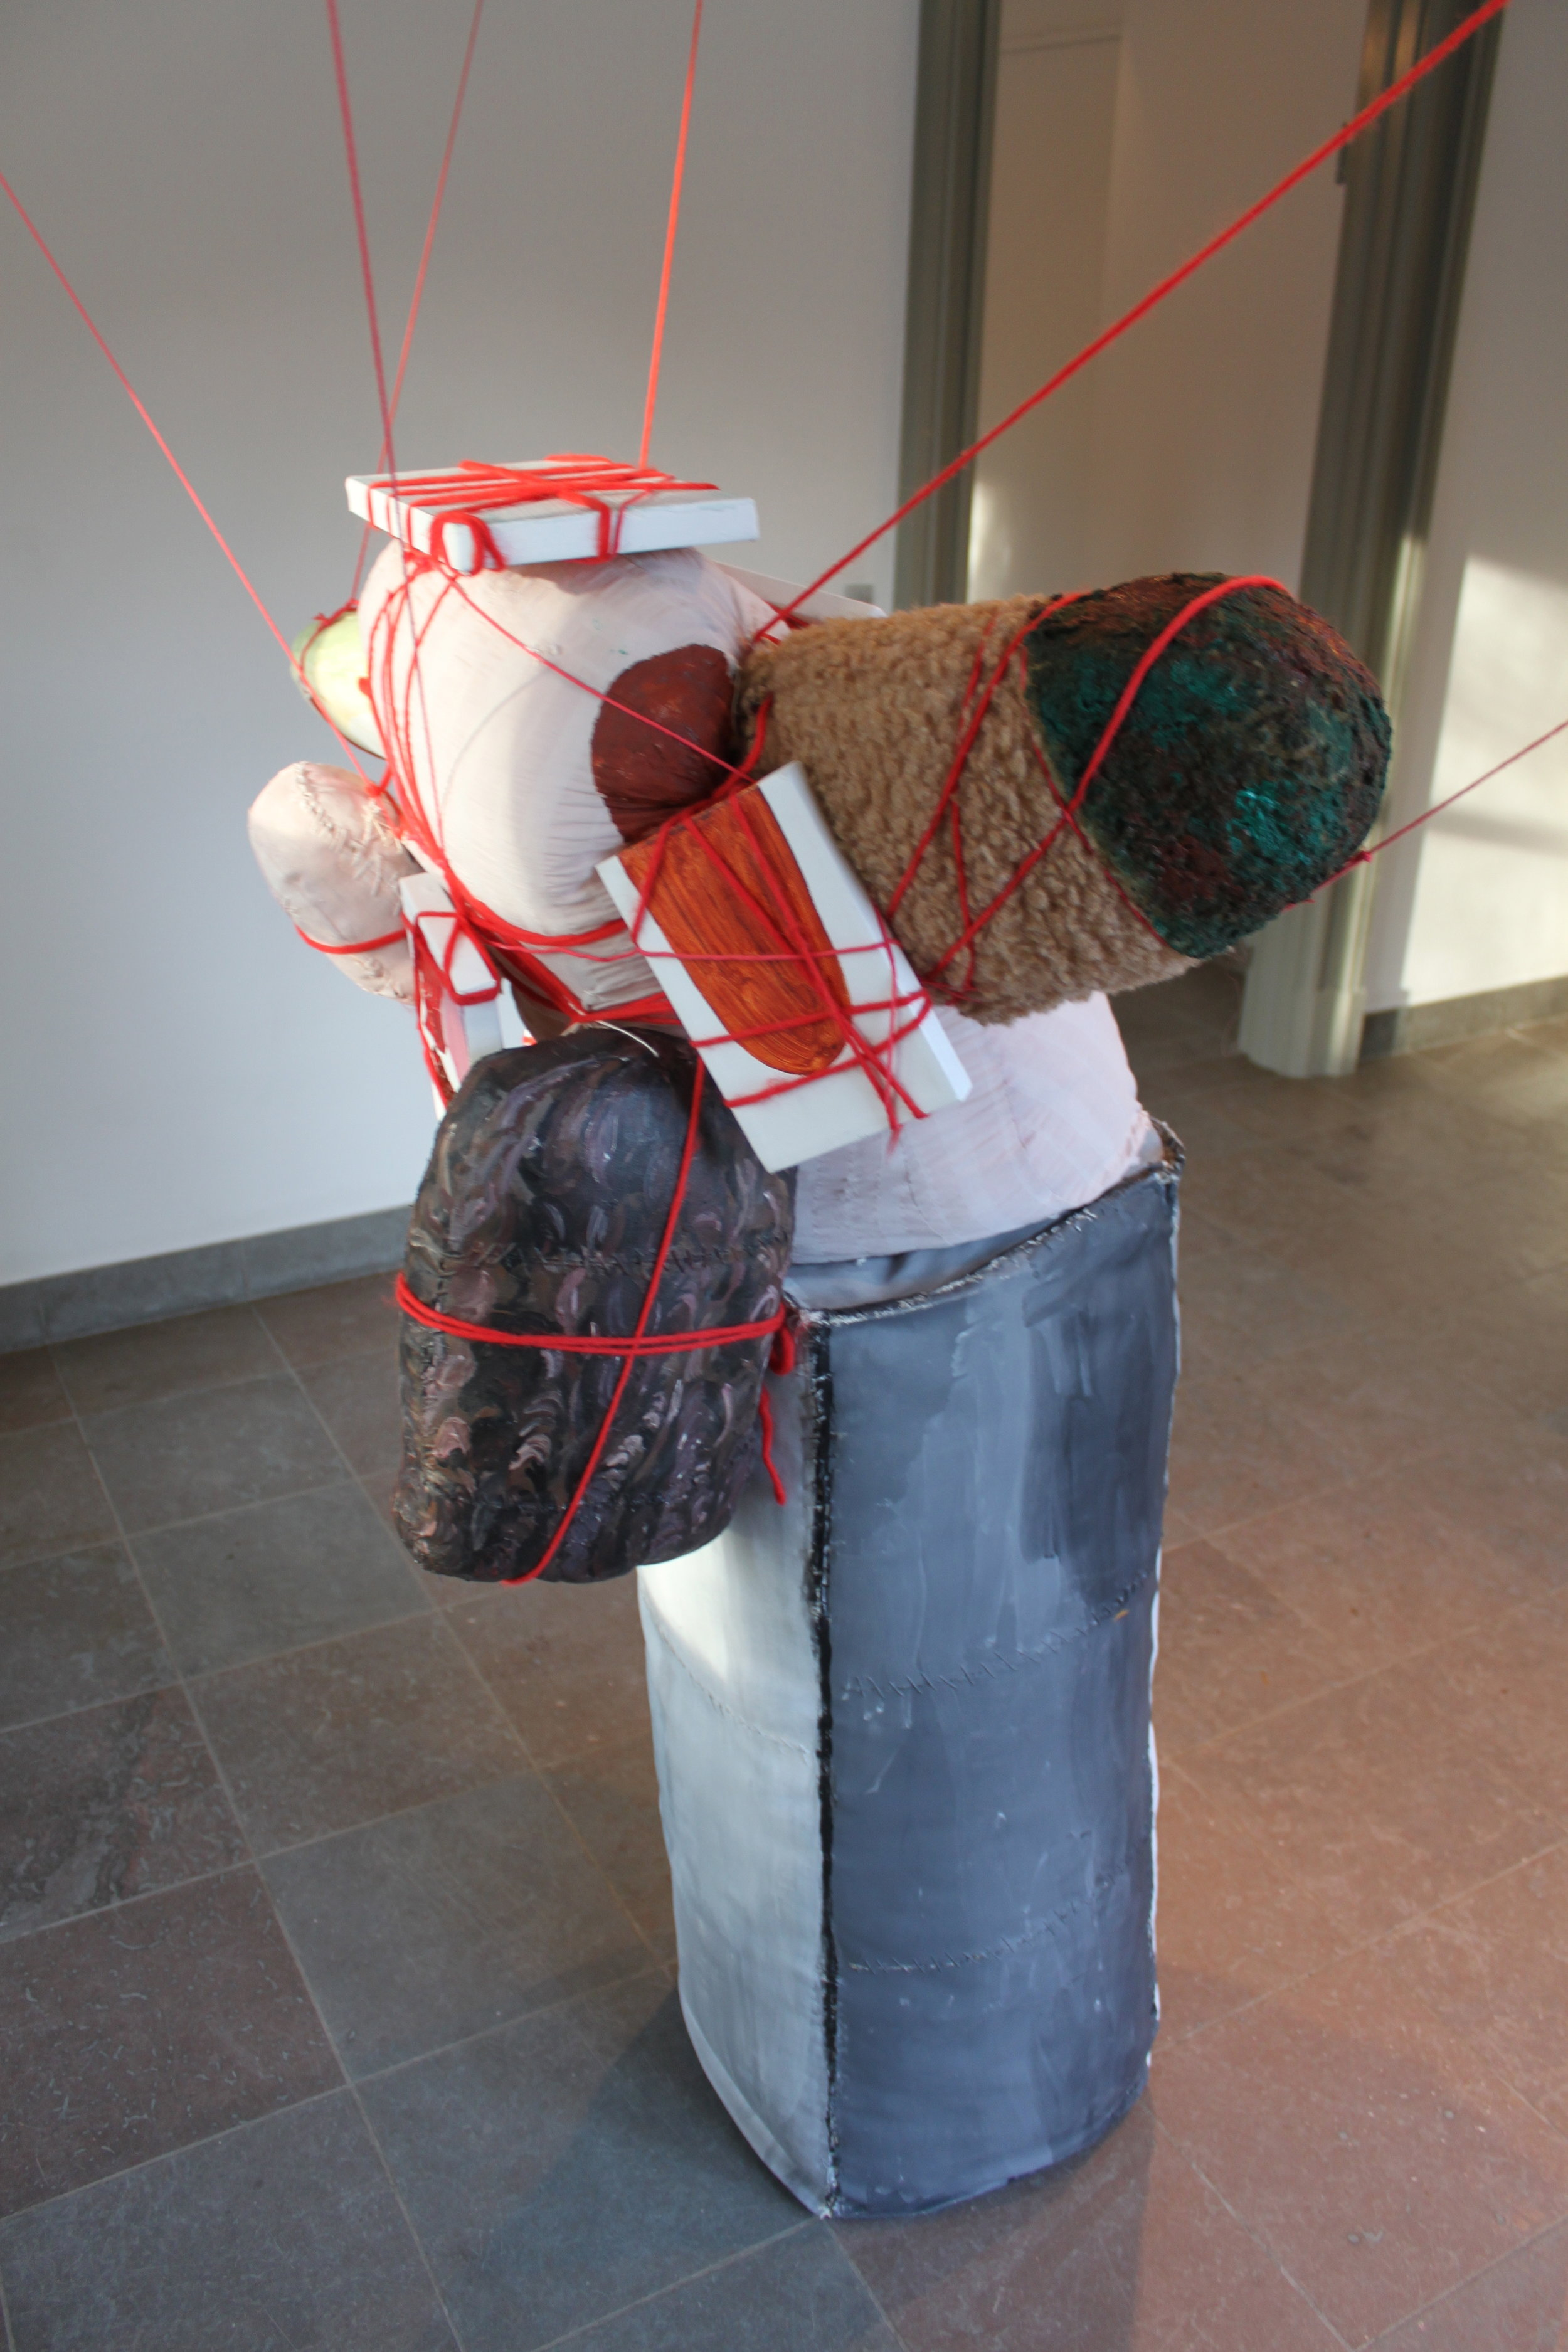 """Powerless""  1.41 x 0.89 x 0.75 meter. Acrylic on textile objects, stuffed textile objects, acrylic on canvas, yarn, engine.The sculpture is moved via drag on strings,it seems as if the whole sculpture breathing. Playgrounds. Møstings Hus 2011."